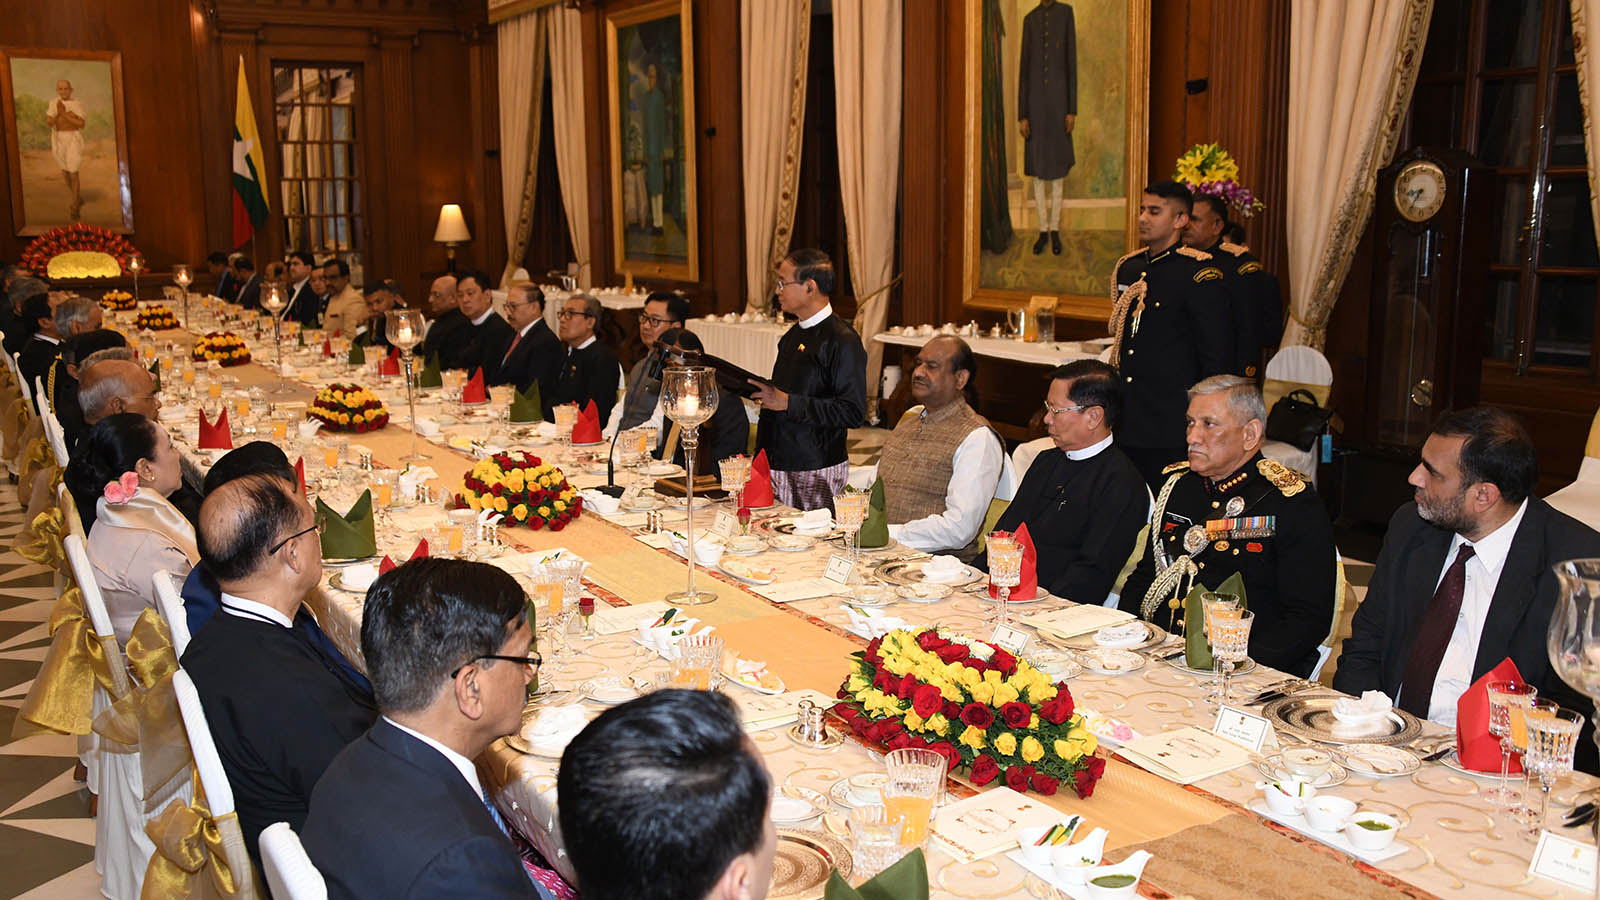 President U Win Myint delivers the address at the state banquet hosted by Indian President Shri Ram Nath Kovind at the Presidential Palace in India on 27 February.  Photo: MNA